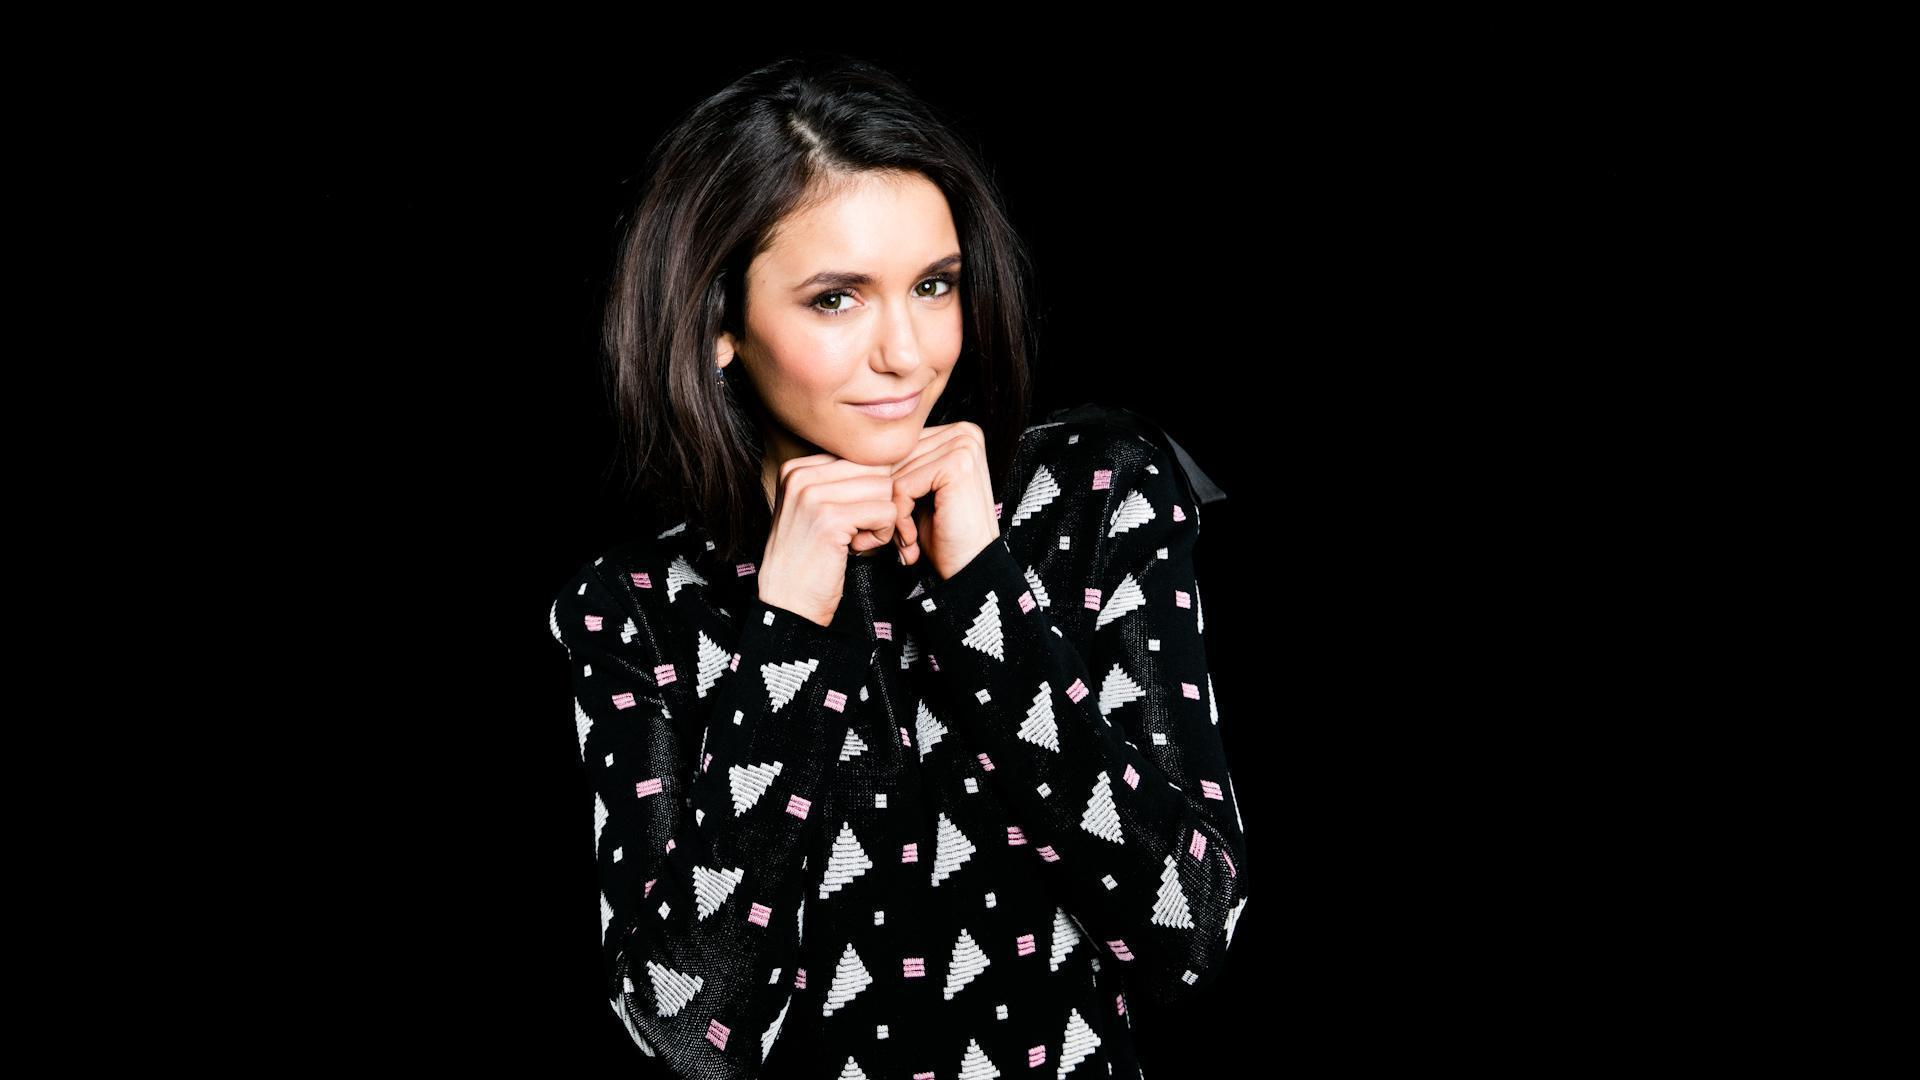 nina dobrev on how the new 39 xxx 39 film empowers women aol. Black Bedroom Furniture Sets. Home Design Ideas